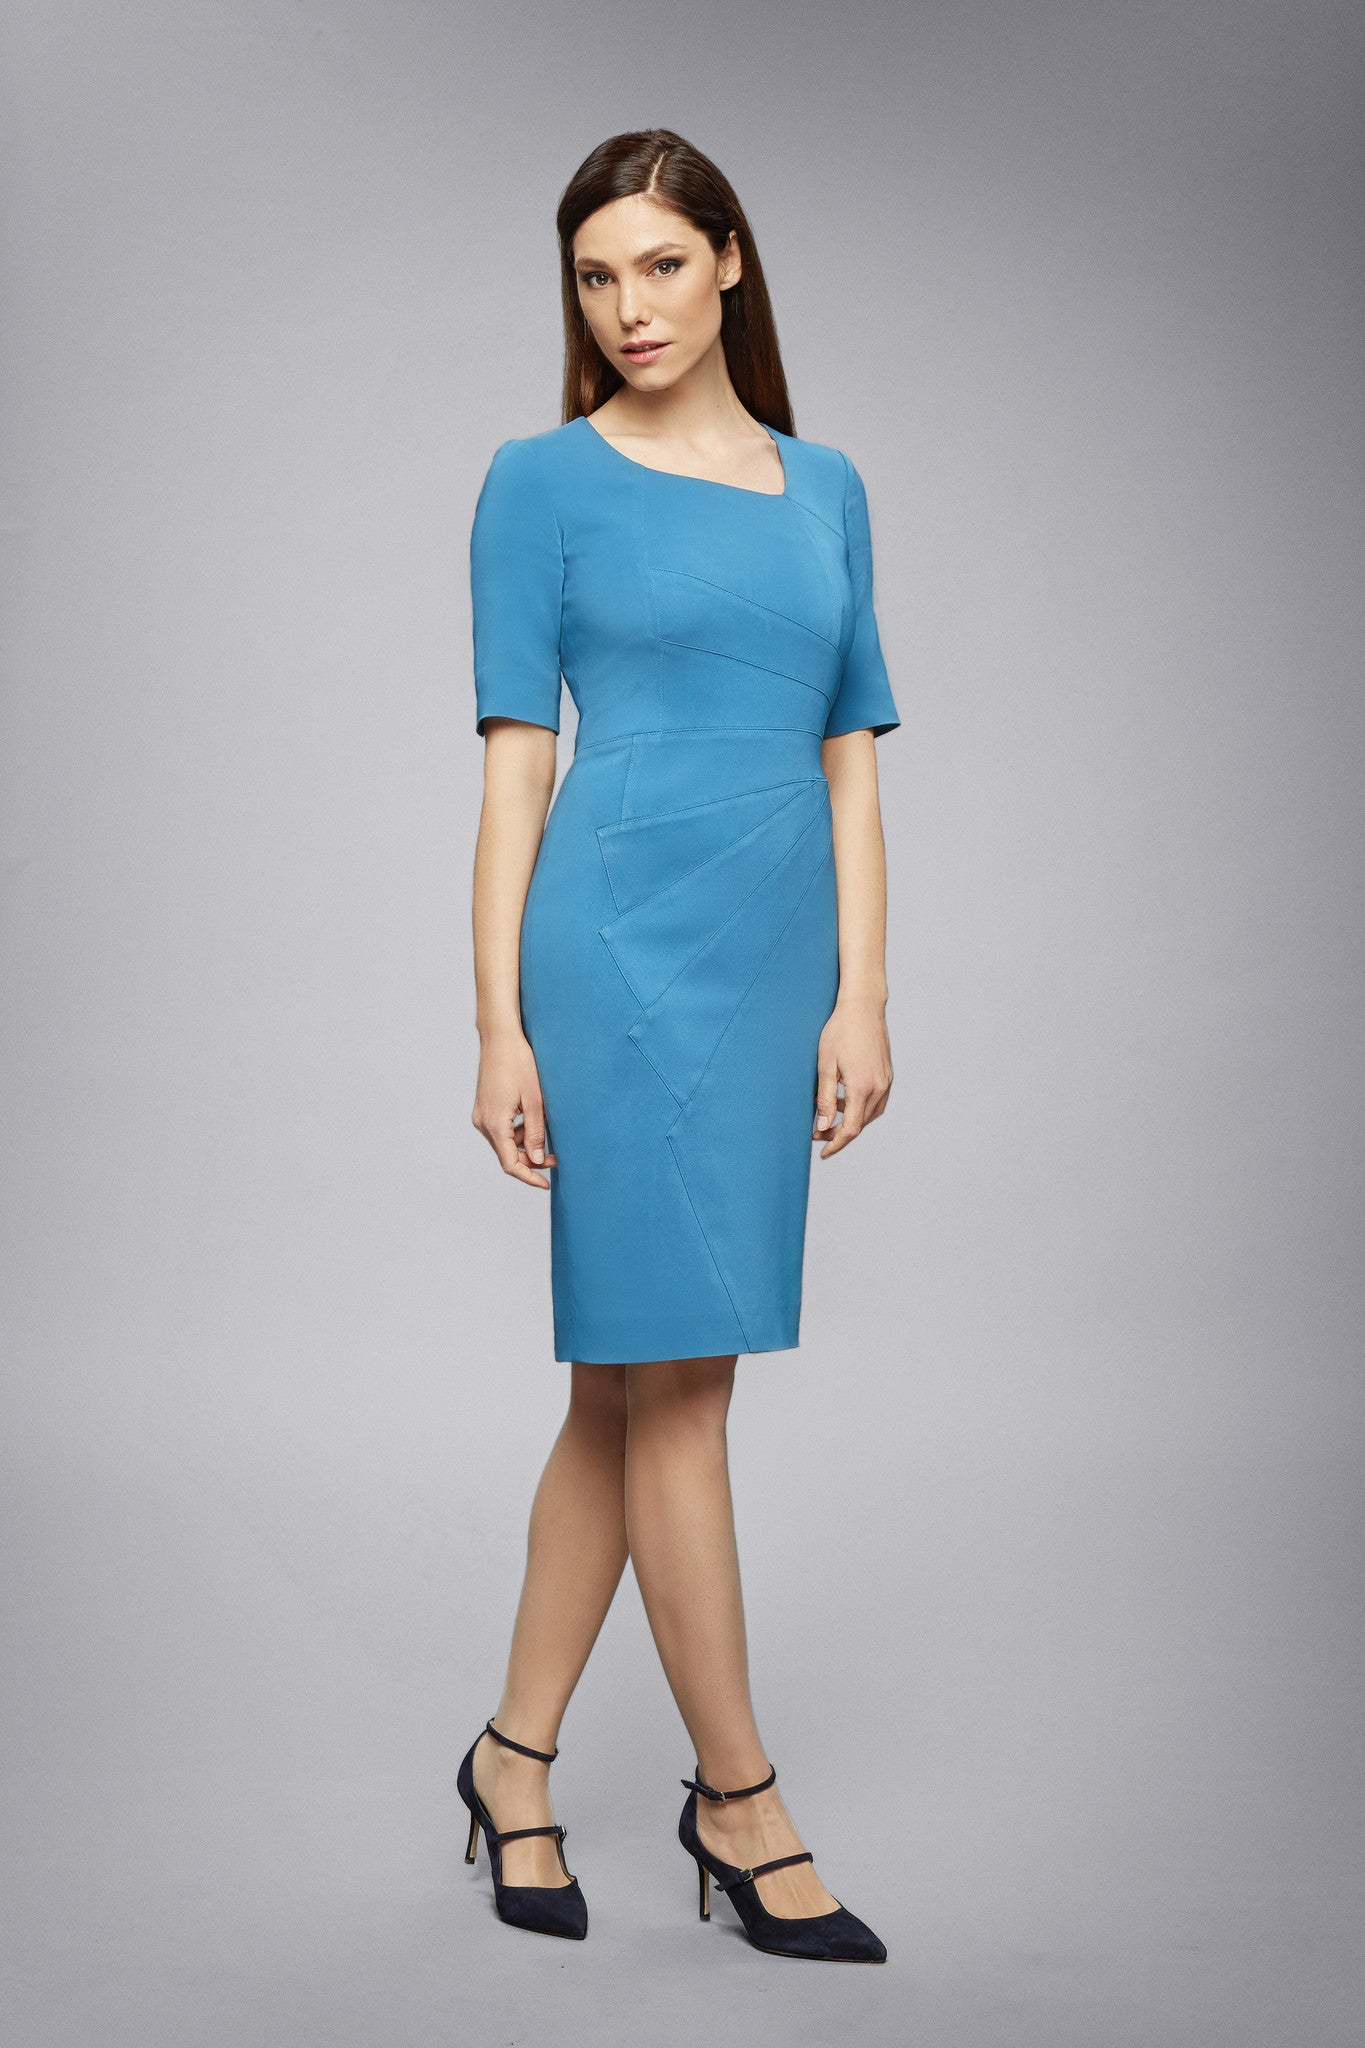 Atlantic Fitted Knee Length Dress with Asymmetrical Neckline